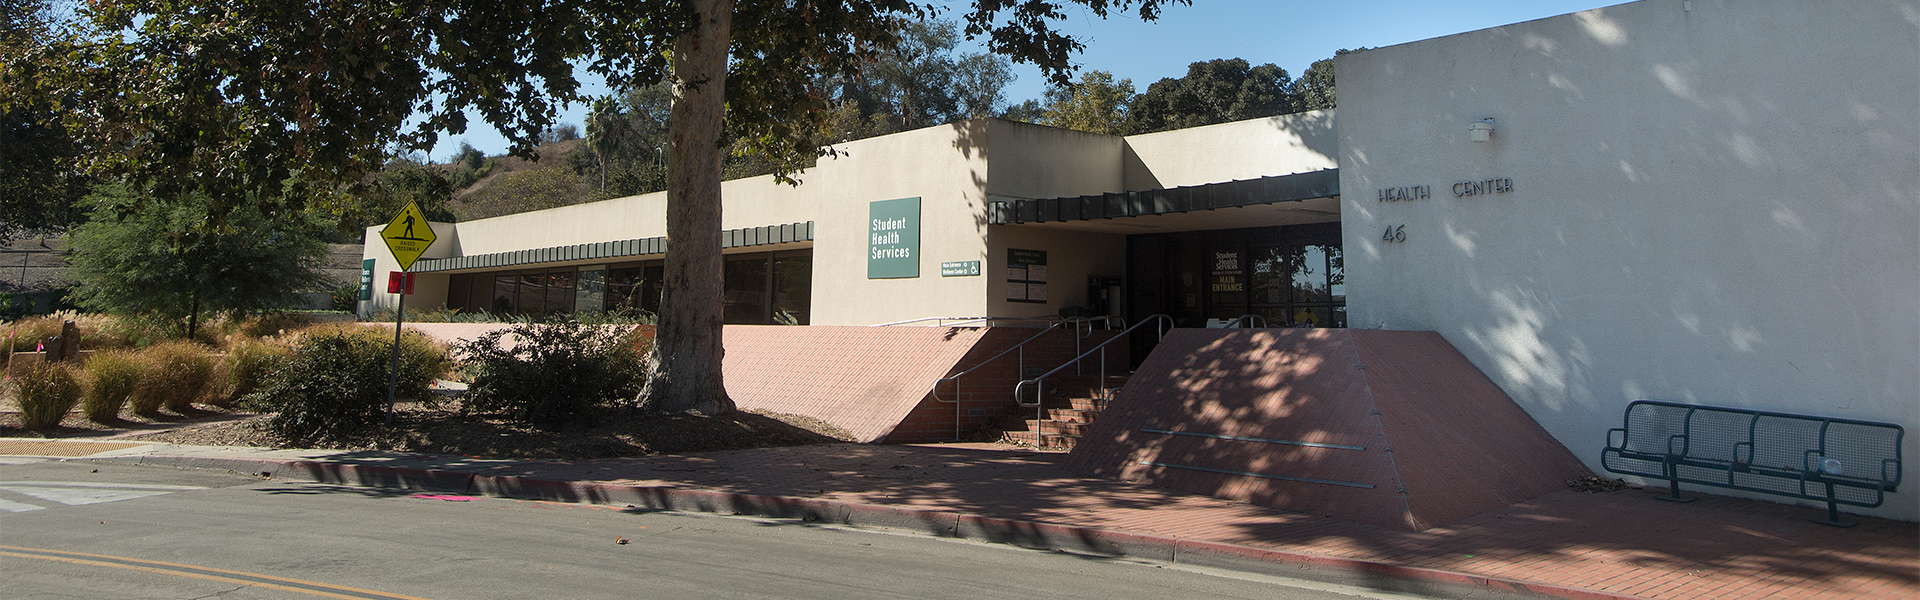 Student Health Services Building at CPP